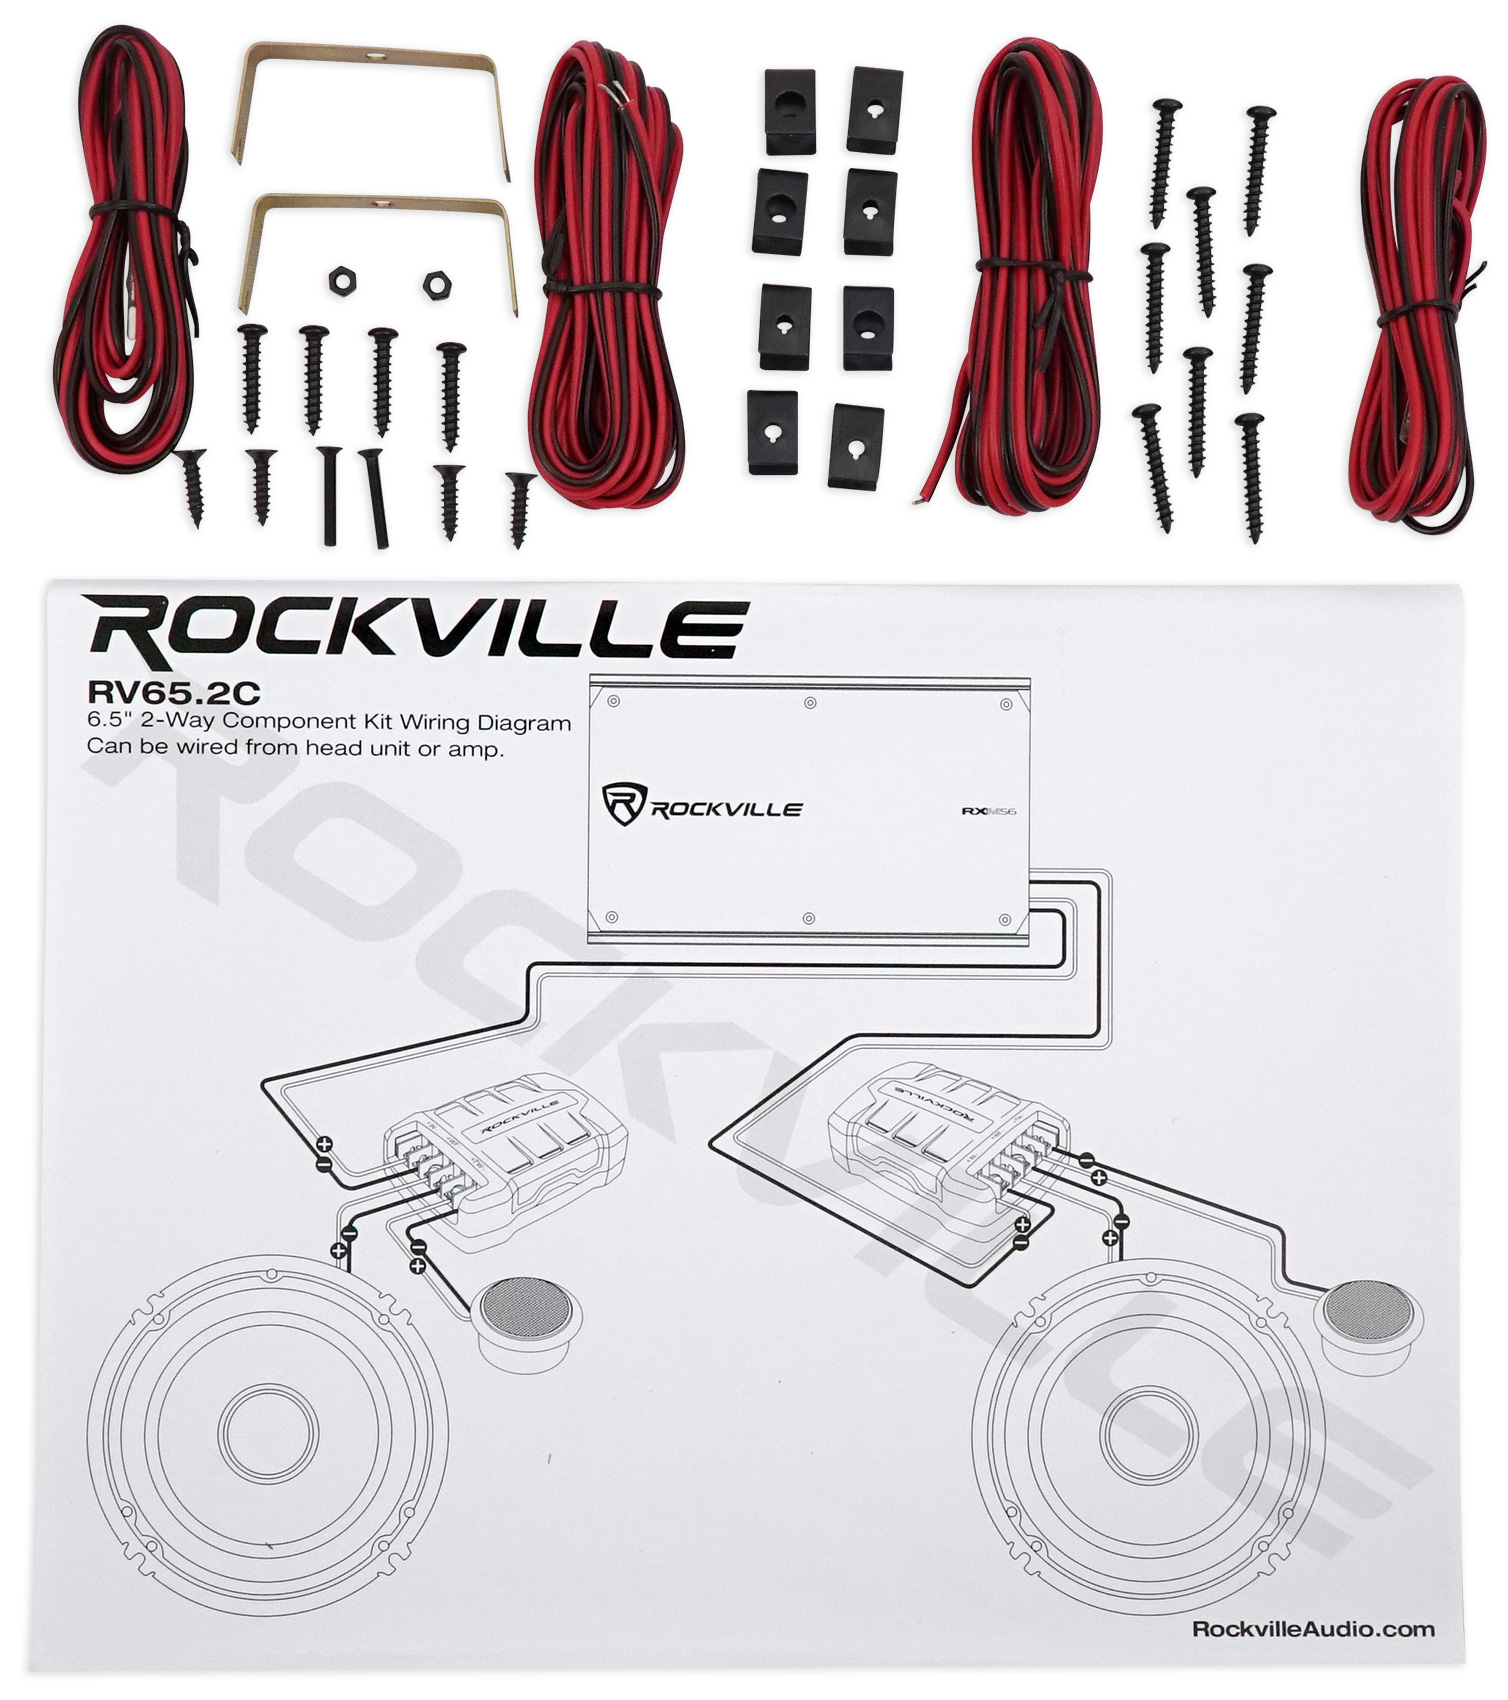 rockville monitor wiring diagram exclusive circuit wiring diagram u2022 rh internationalsportsoutlet co DIY 3-Way Crossover 3-Way Crossover